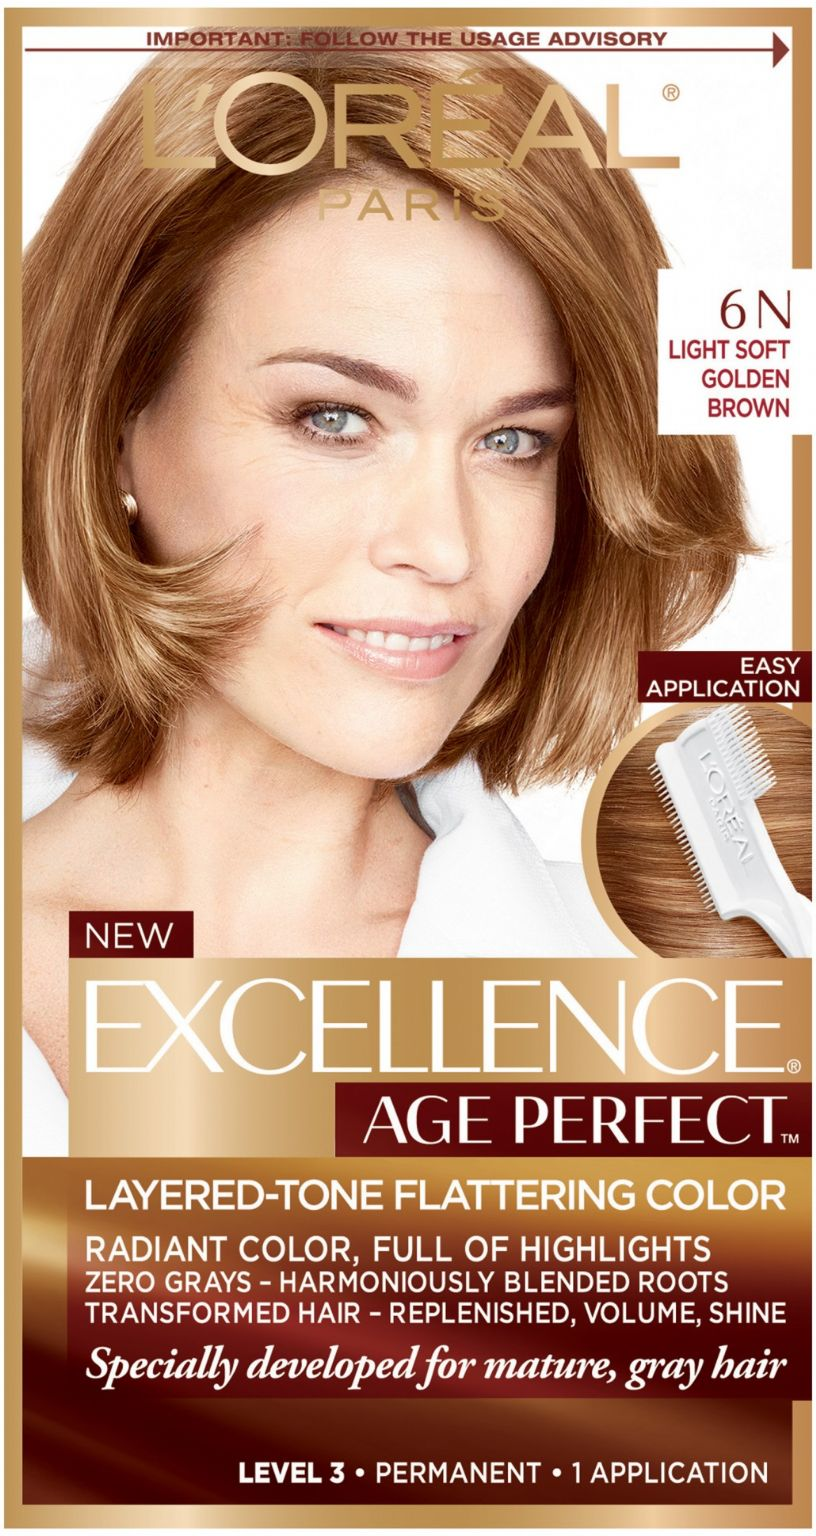 Loreal Paris Excellence Age Perfect Reviews Photo Makeupalley